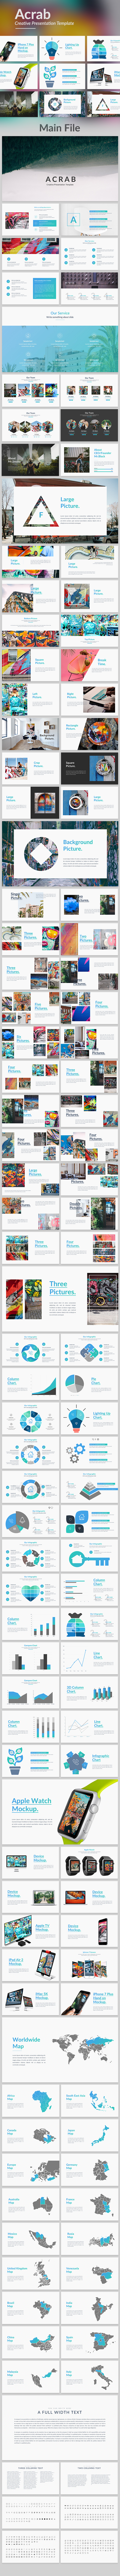 Acrab - Creative Keynote Template - Creative Keynote Templates